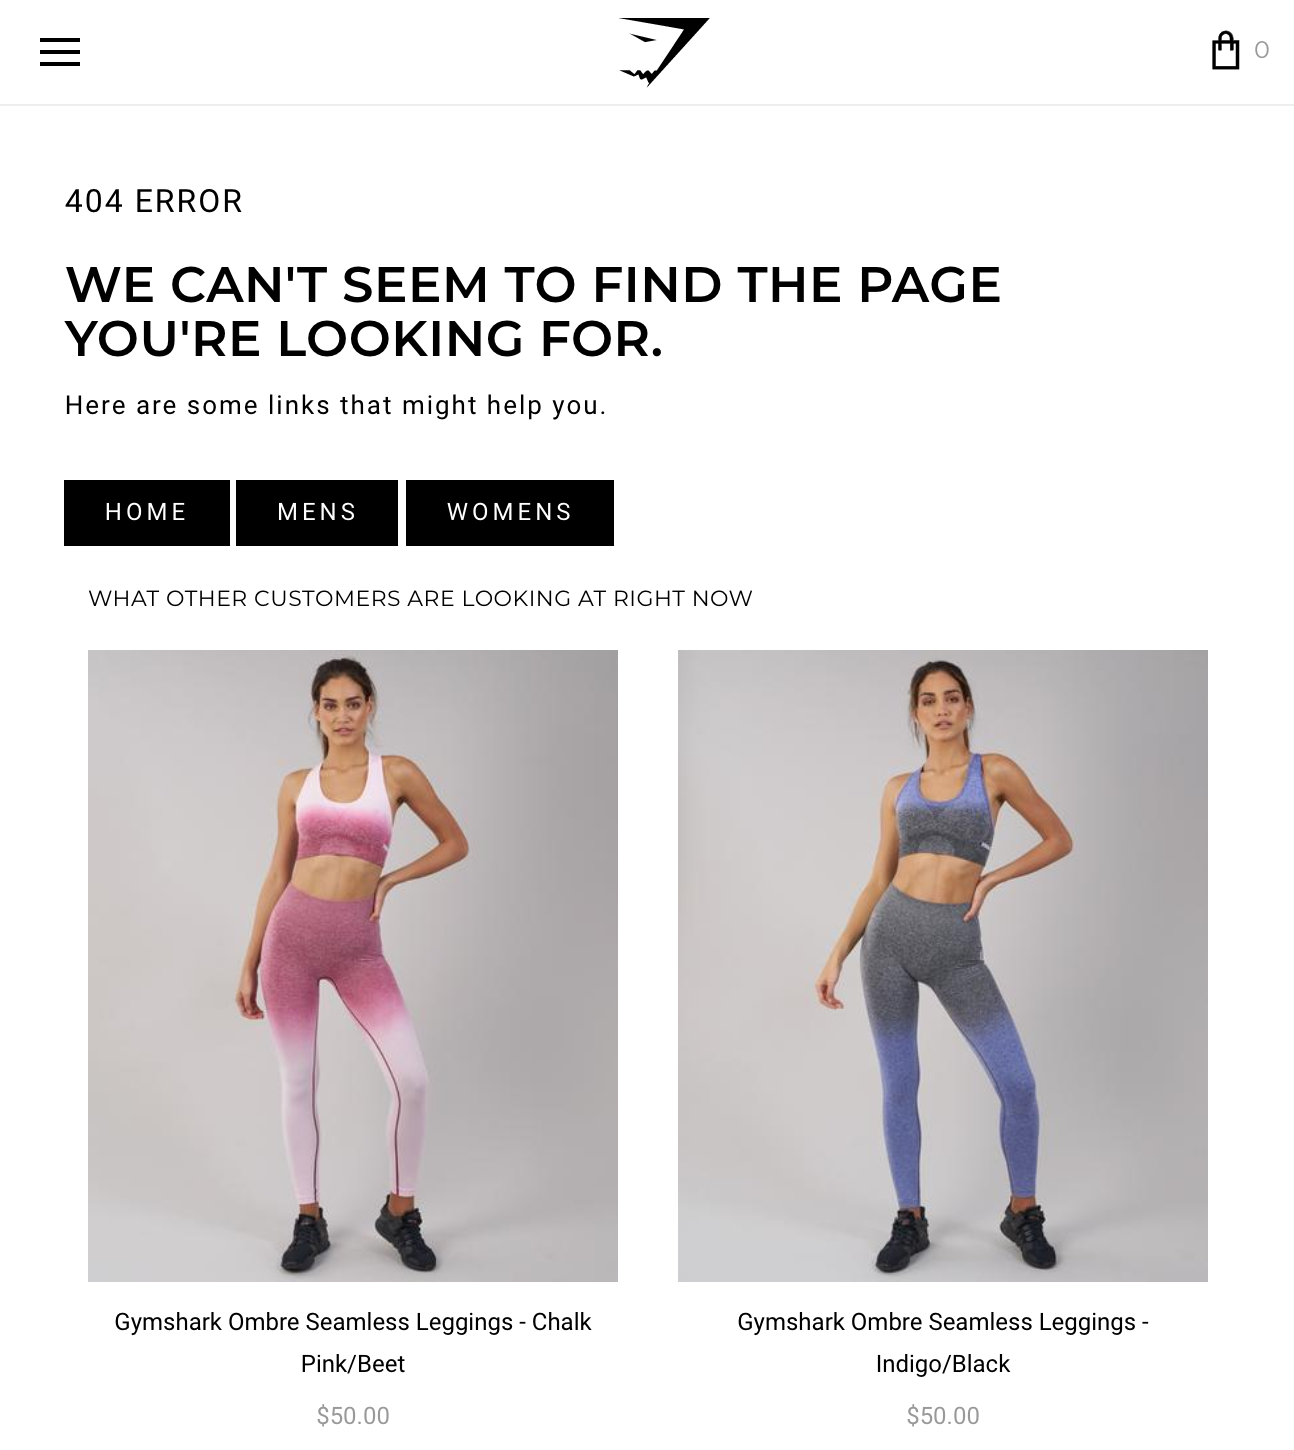 12 Ways To Improve Ecommerce Site Performance & Speed For 2X Conversions